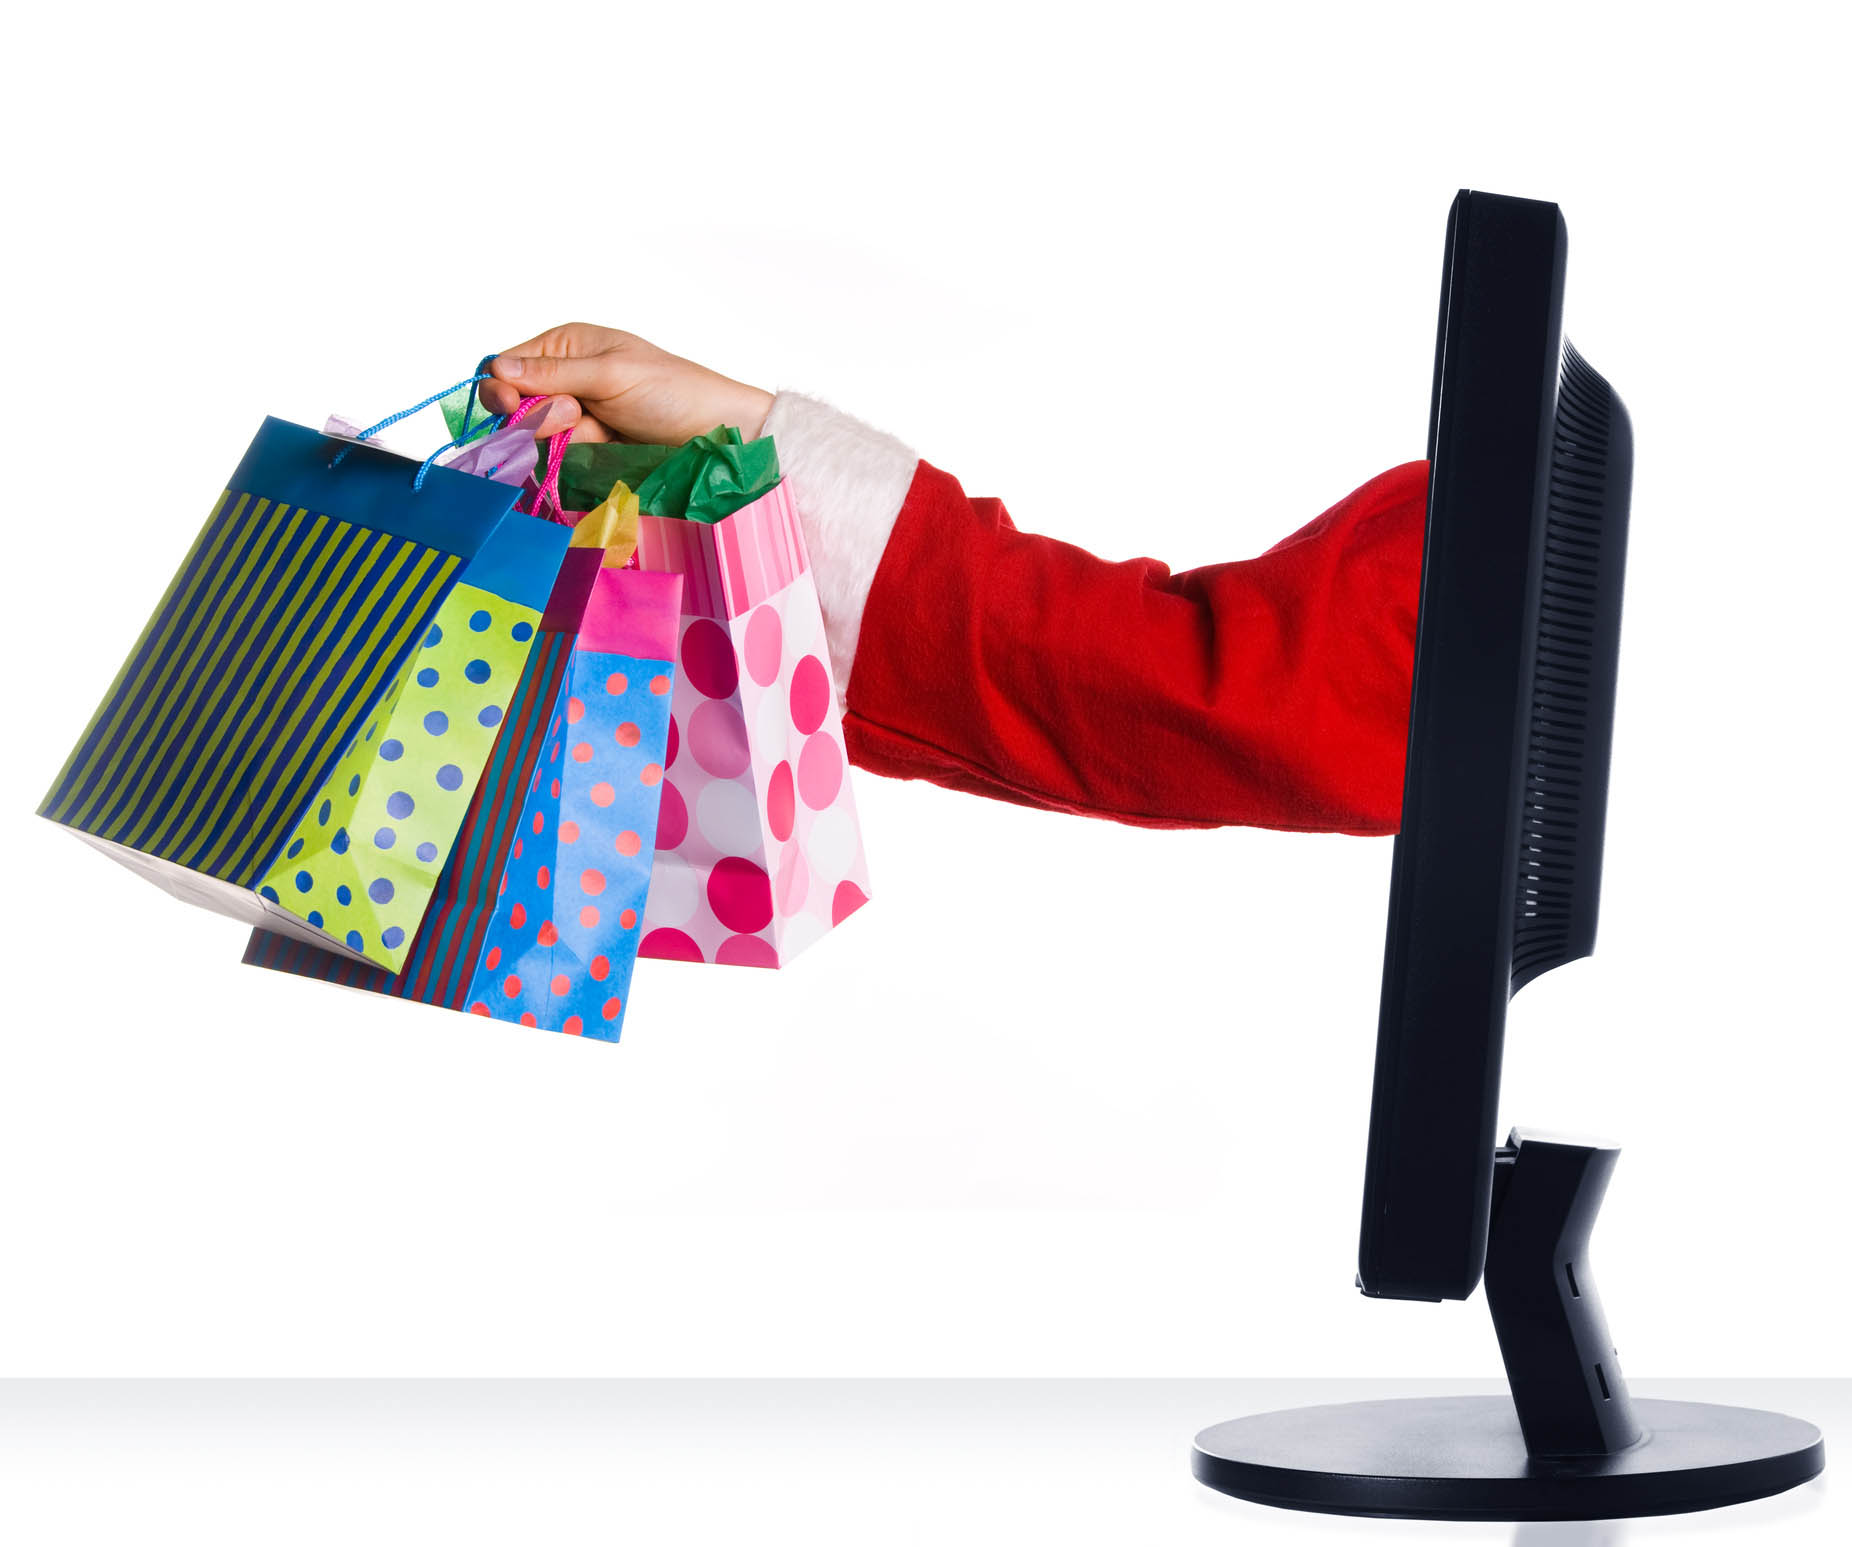 ASEAN ecommerce poised for take-off